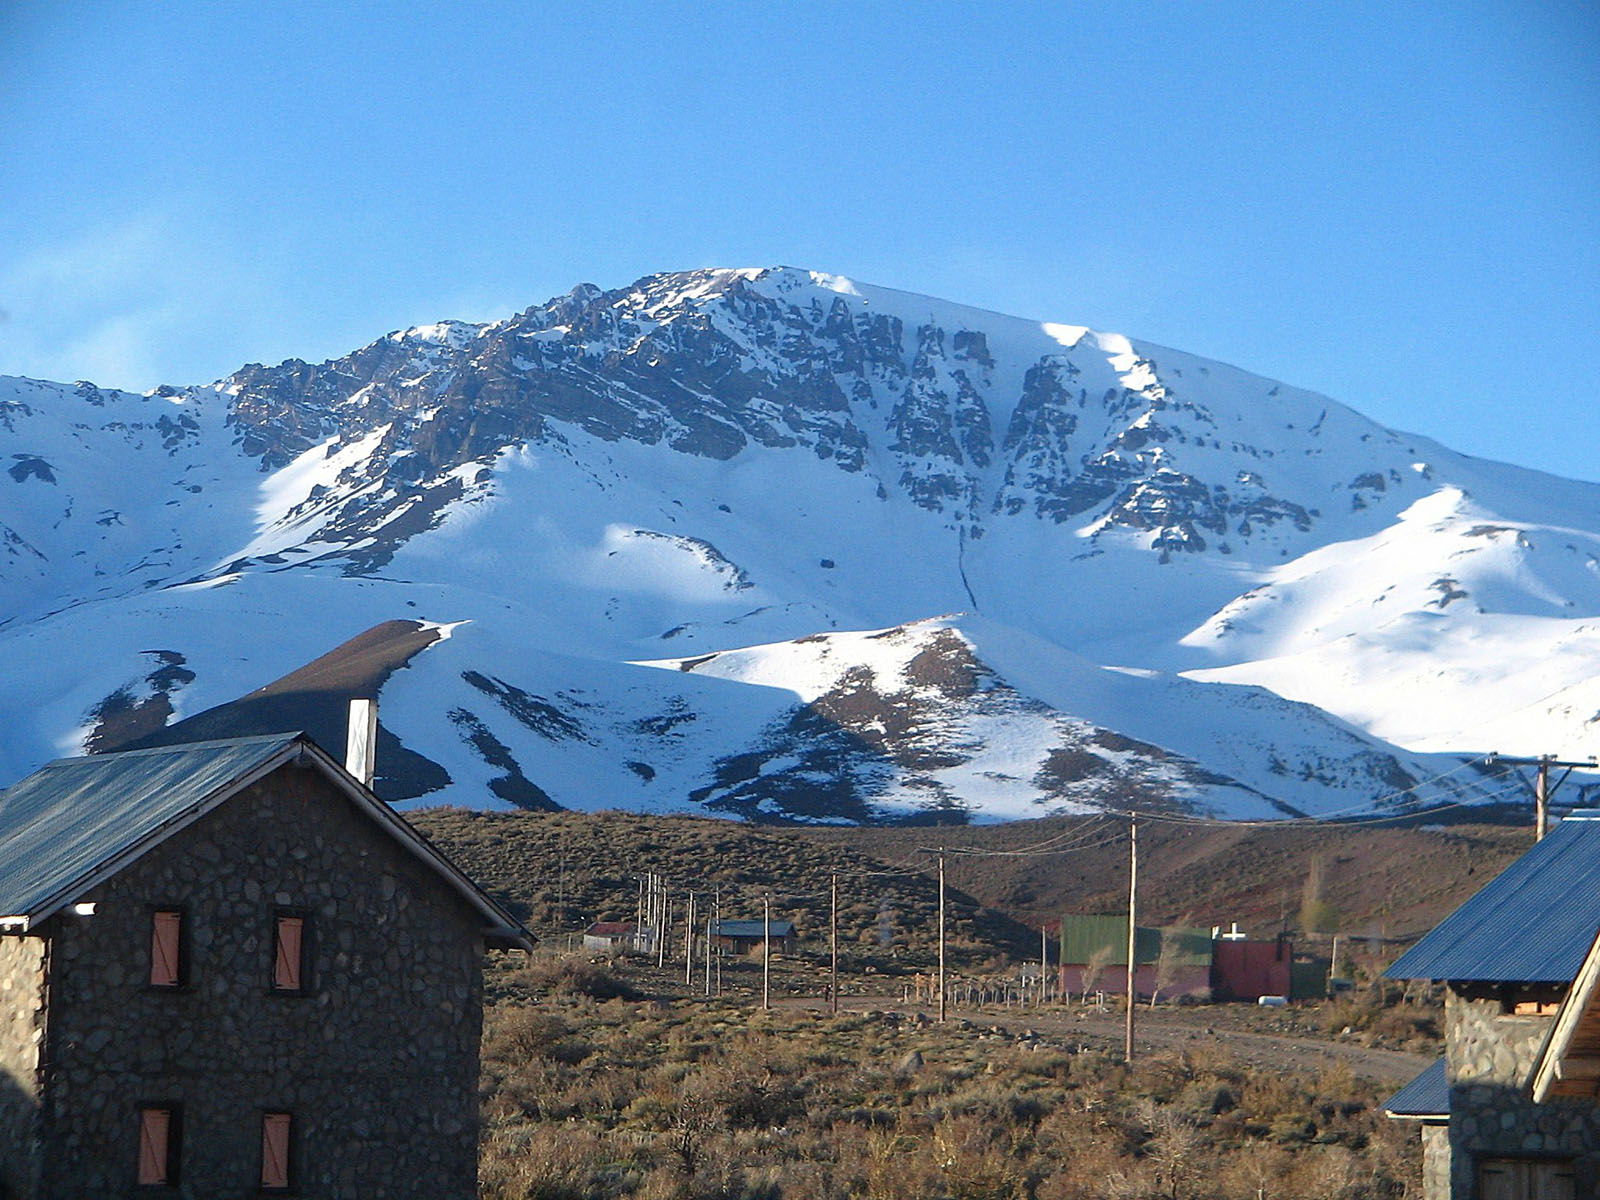 Photo: Valle de los Molles, in the same department of Malargue, but more near Las Leñas ski resort.